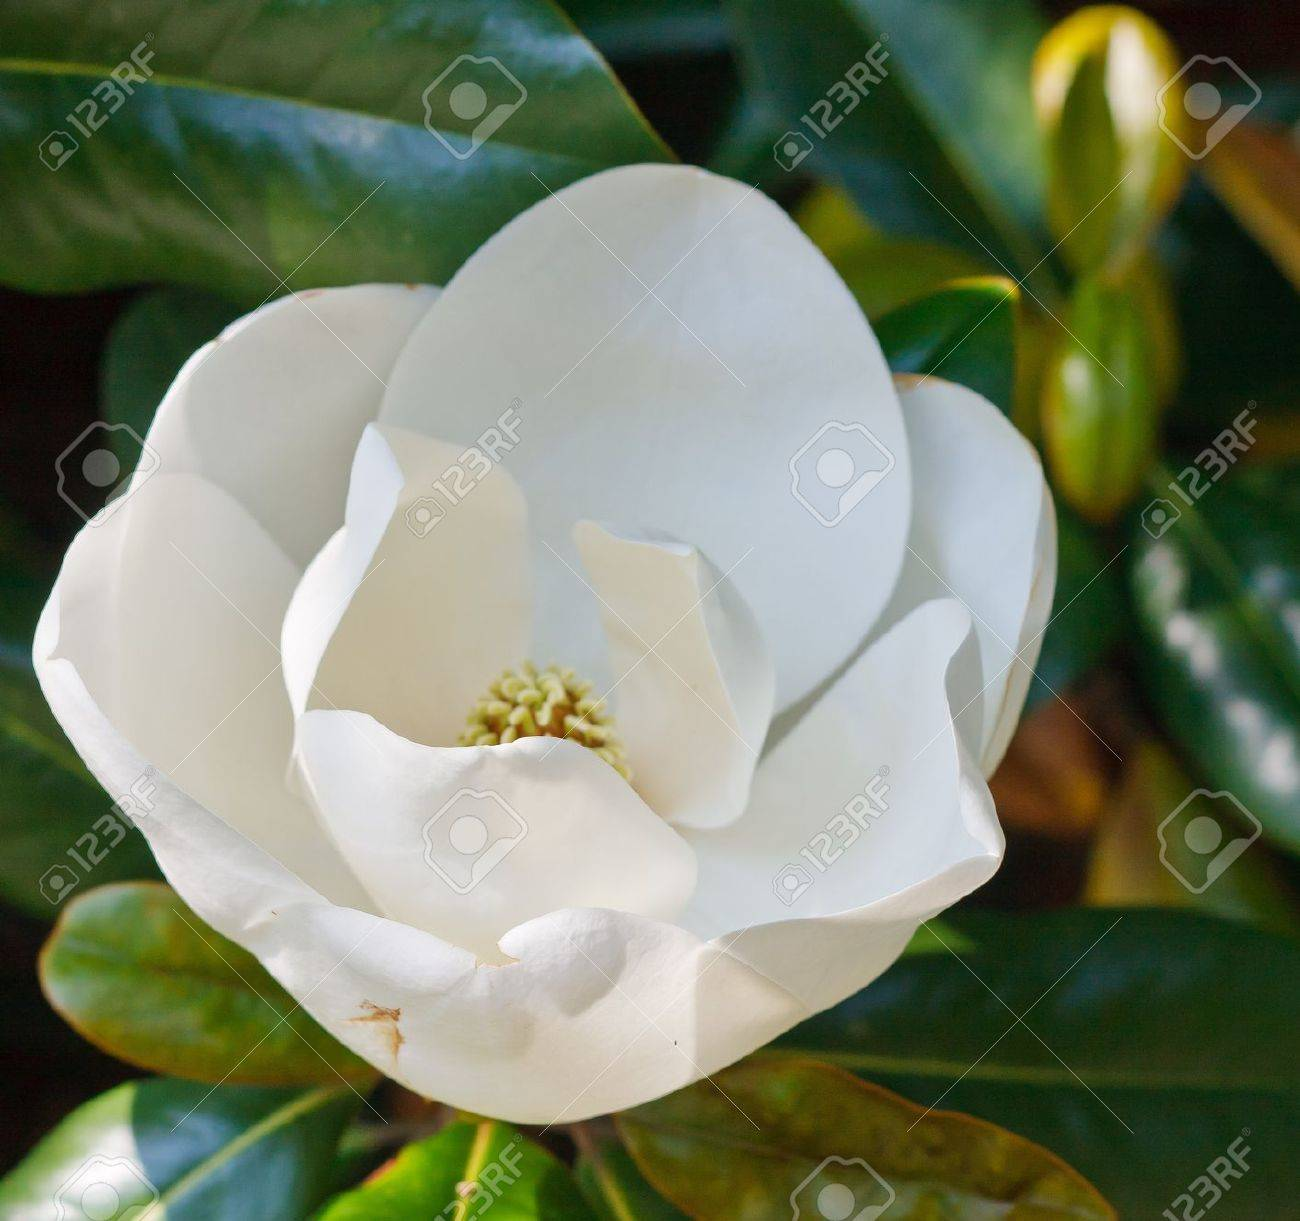 A white magnolia blossom just opening up in a tree Stock Photo - 10449863